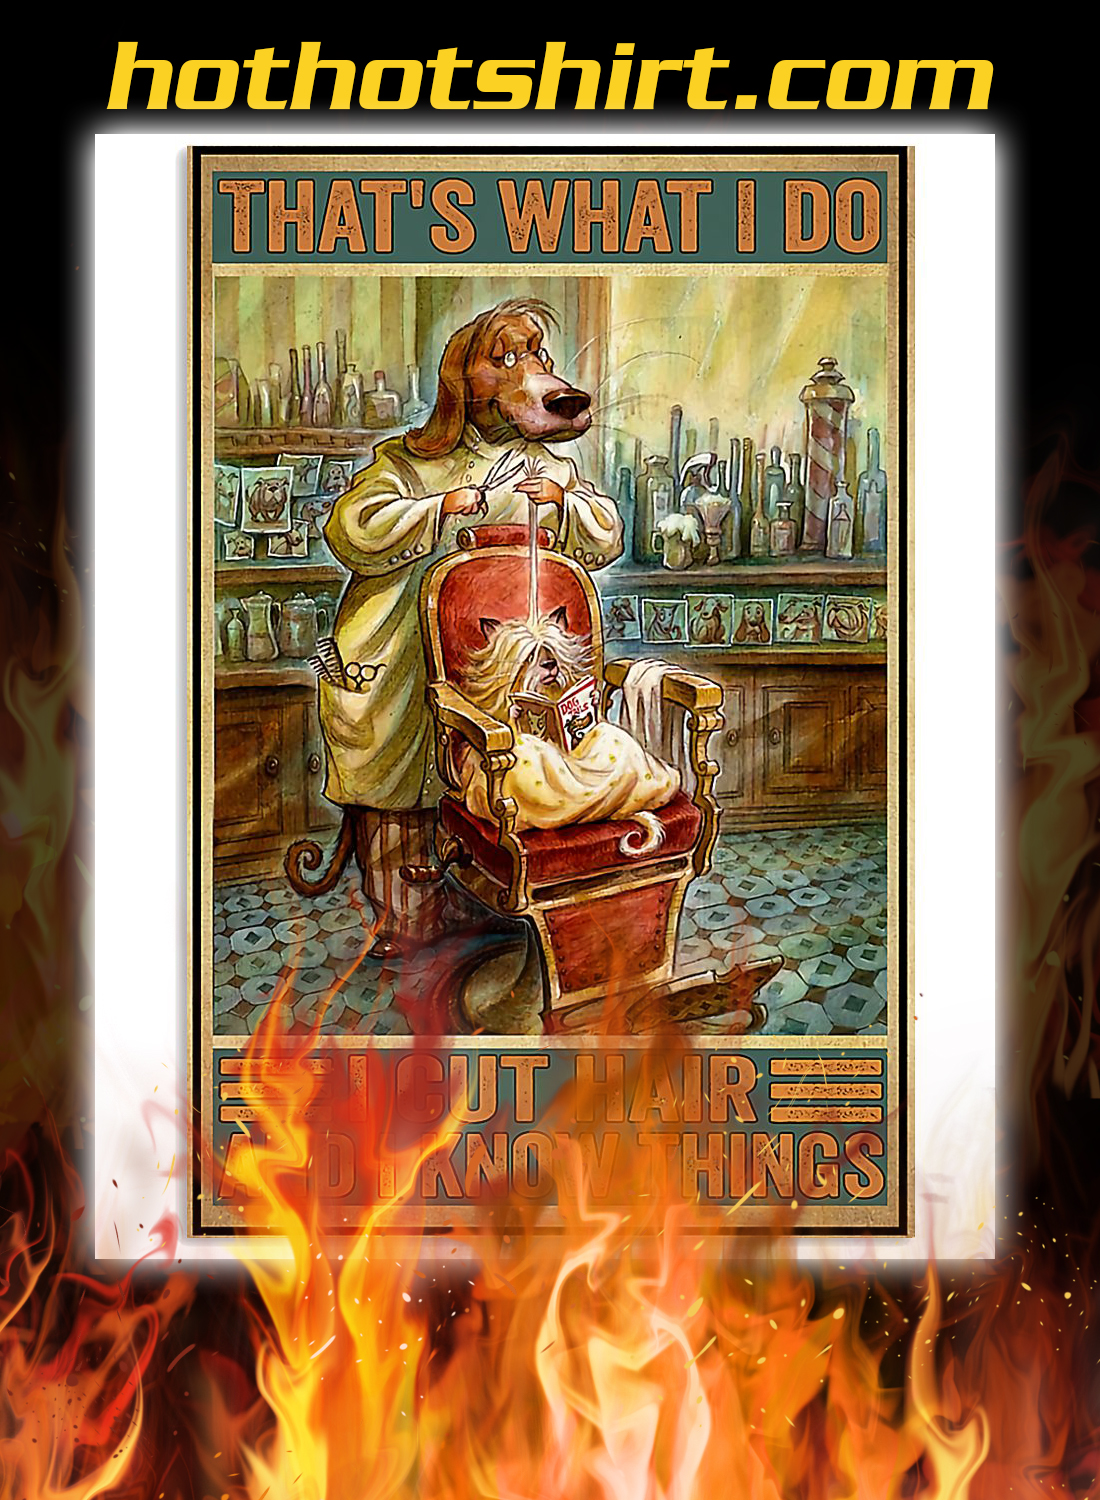 Dog hairdresser that's what i do i cut hair and i know things poster 3